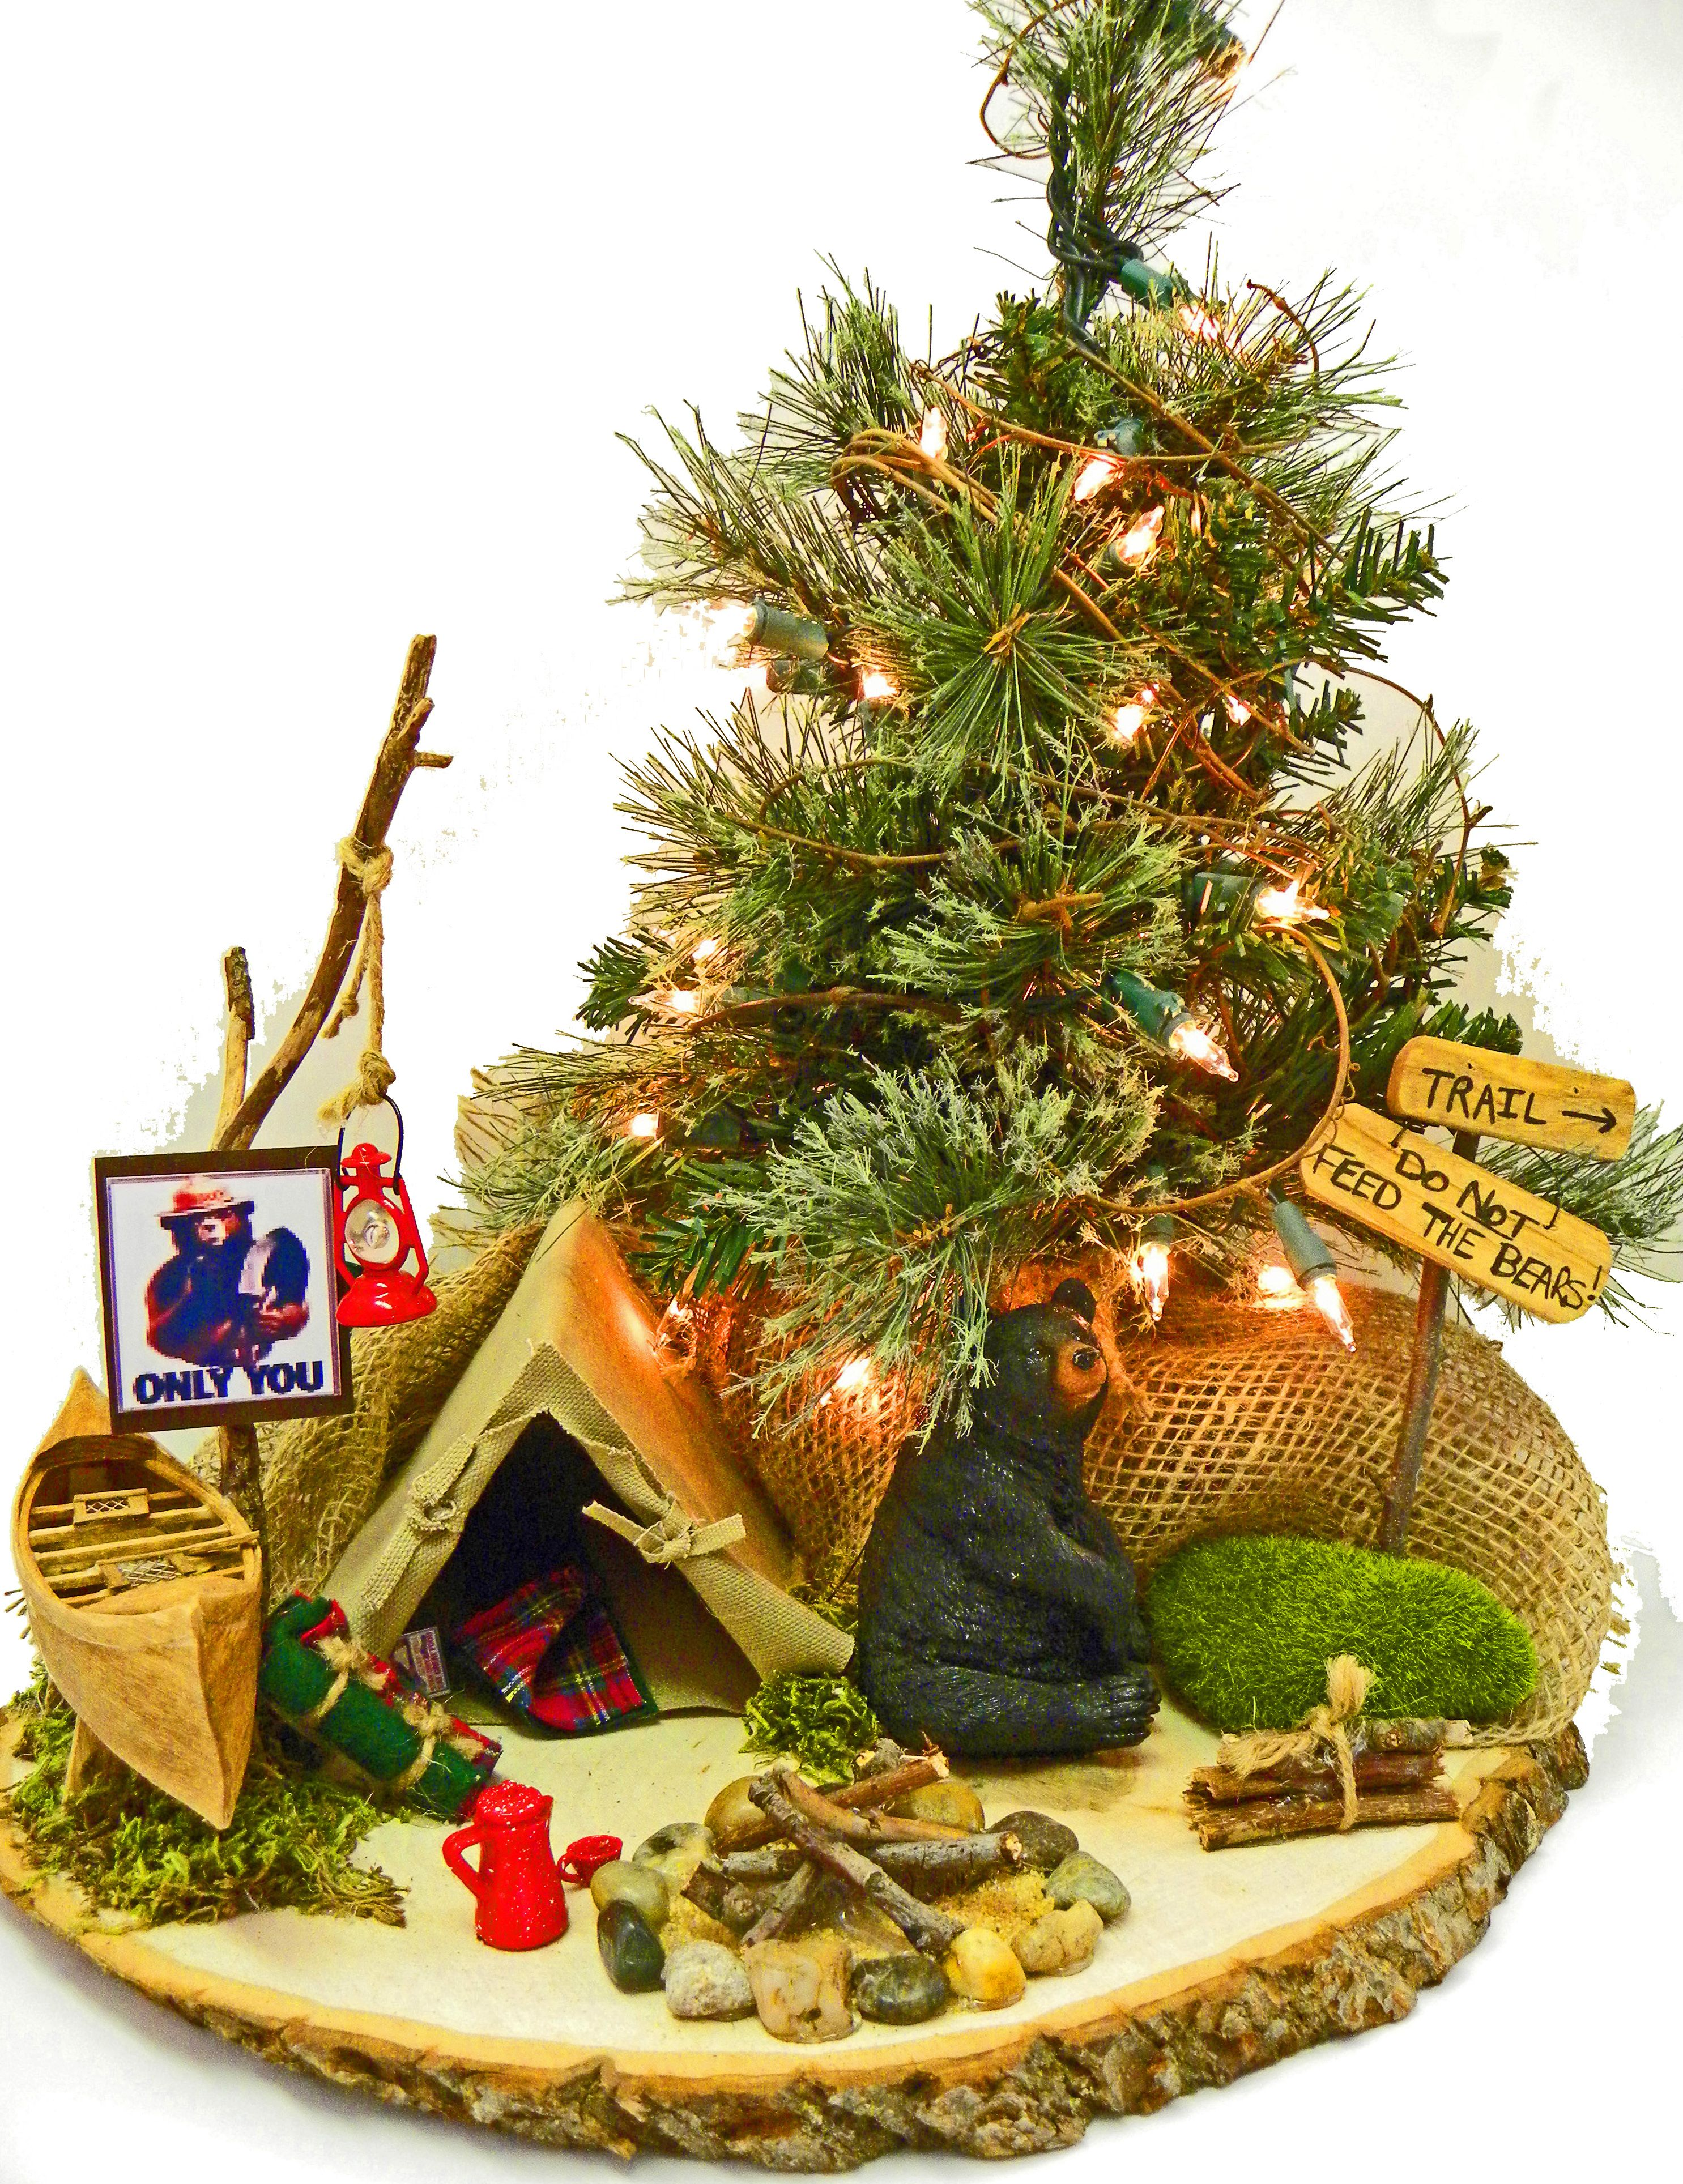 Camping christmas tree ornaments - Camping Tabletop Christmas Tree